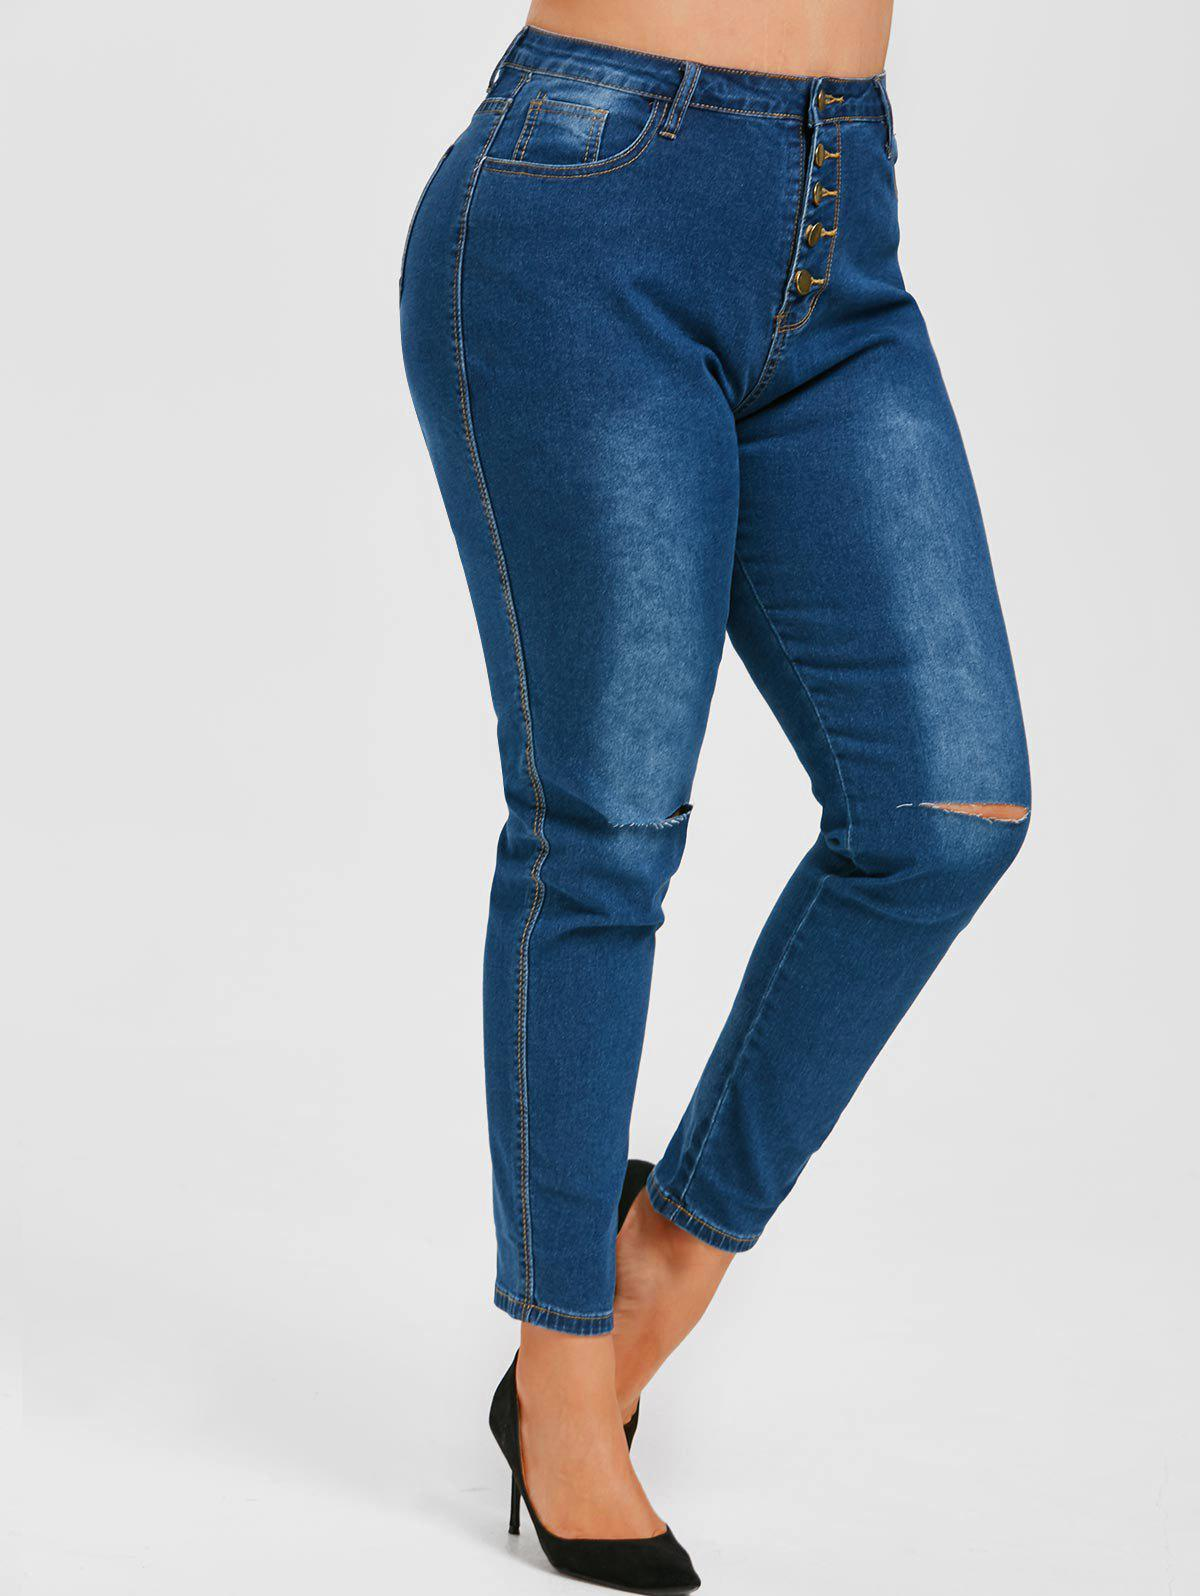 New Ripped Button Fly High Waisted Plus Size Skinny Jeans